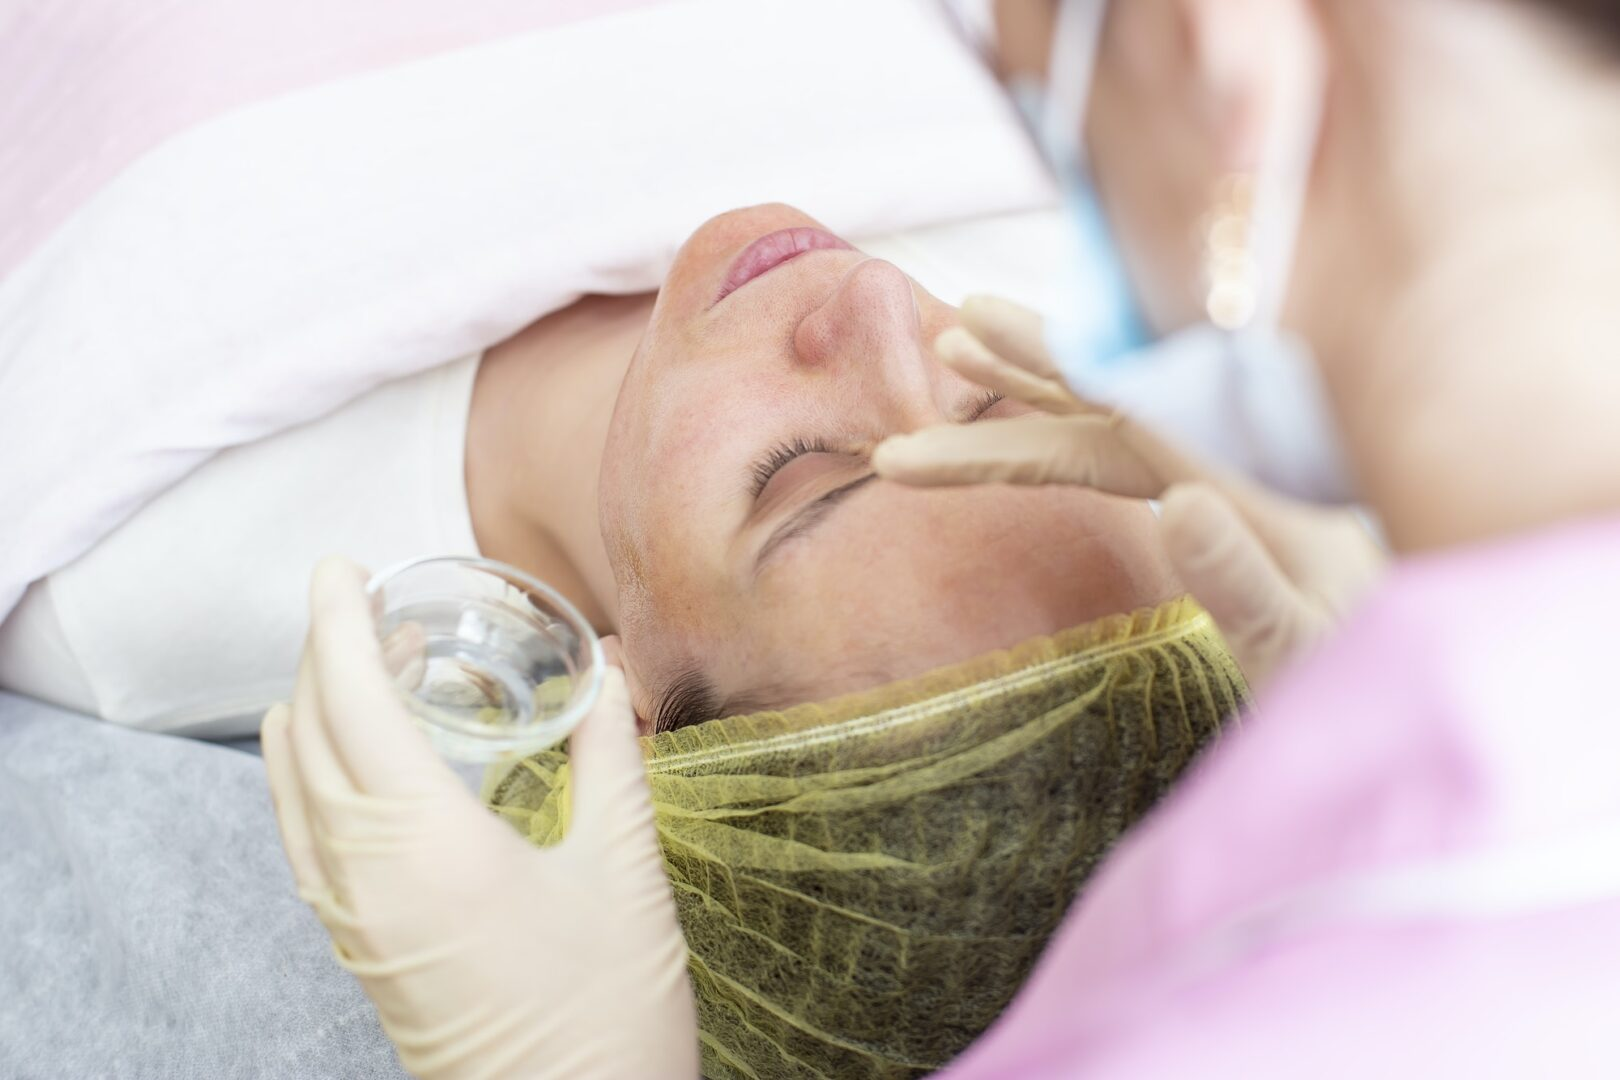 A professional cosmetologist applies a chemical peeling solution to the patient on the face